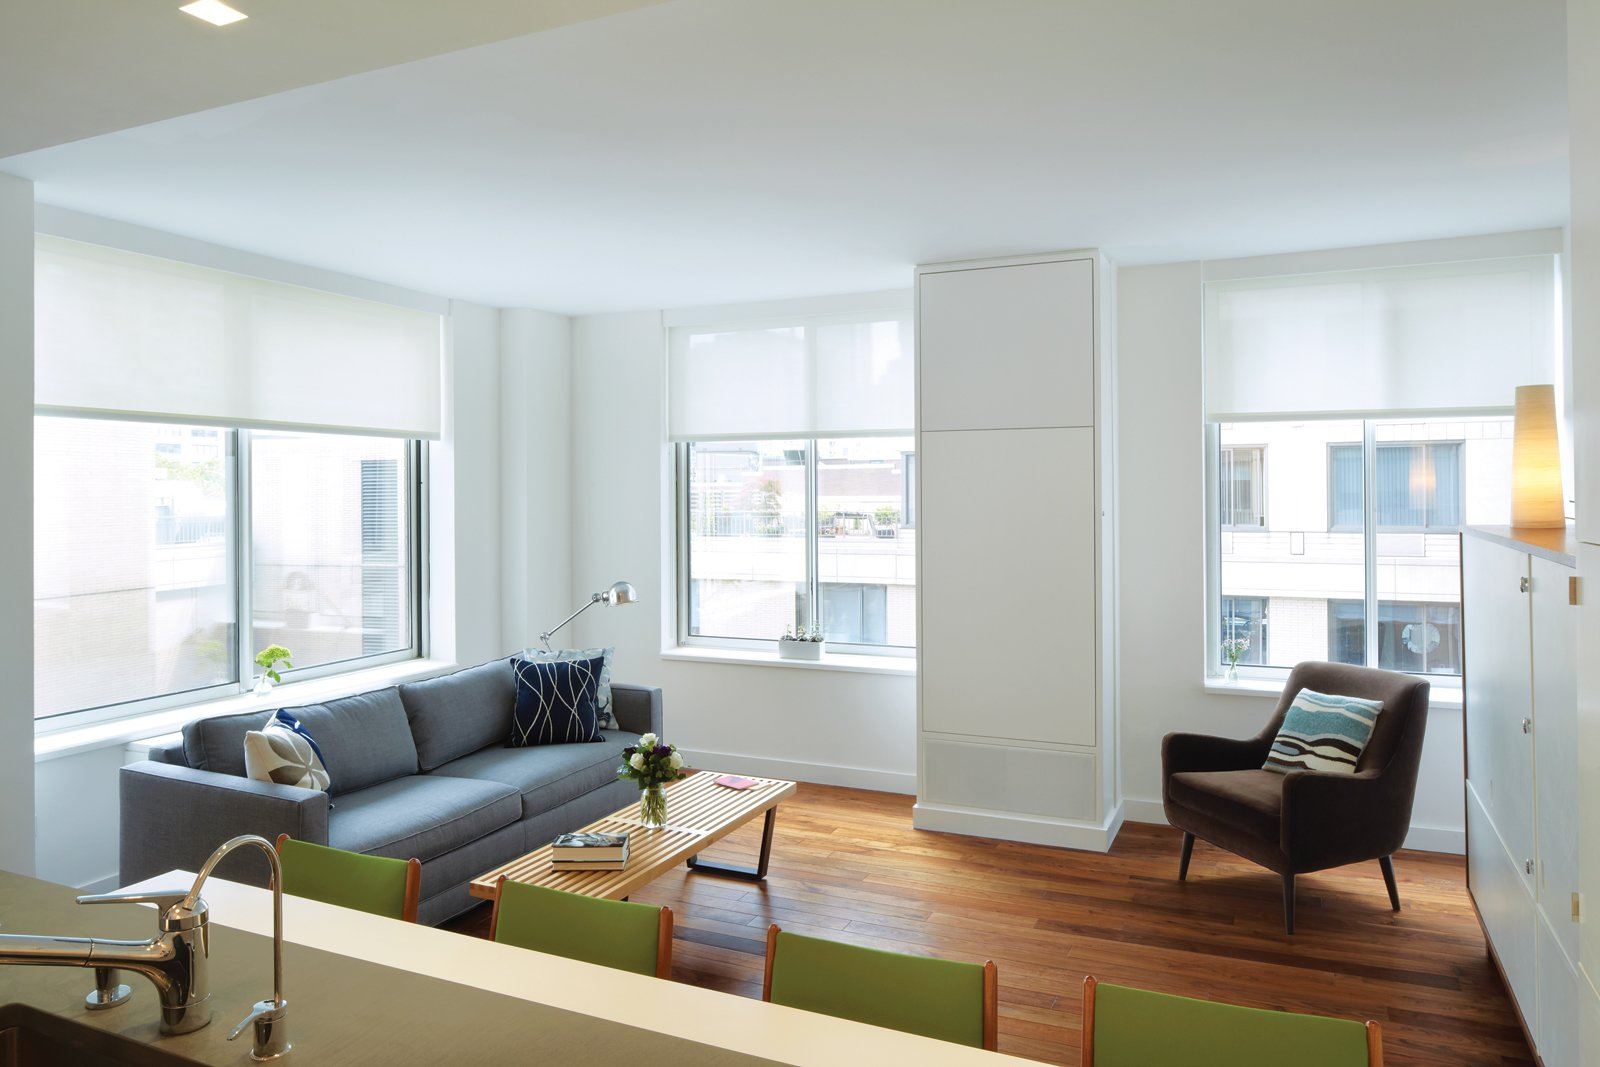 Living Room, Medium Hardwood Floor, Sofa, Chair, Lamps, Coffee Tables, Storage, Recessed Lighting, Table Lighting, Stools, and Bar Like a Murphy bed, the dining table tucks into the wall when not in use.  Small Spaces from Hide and Eat